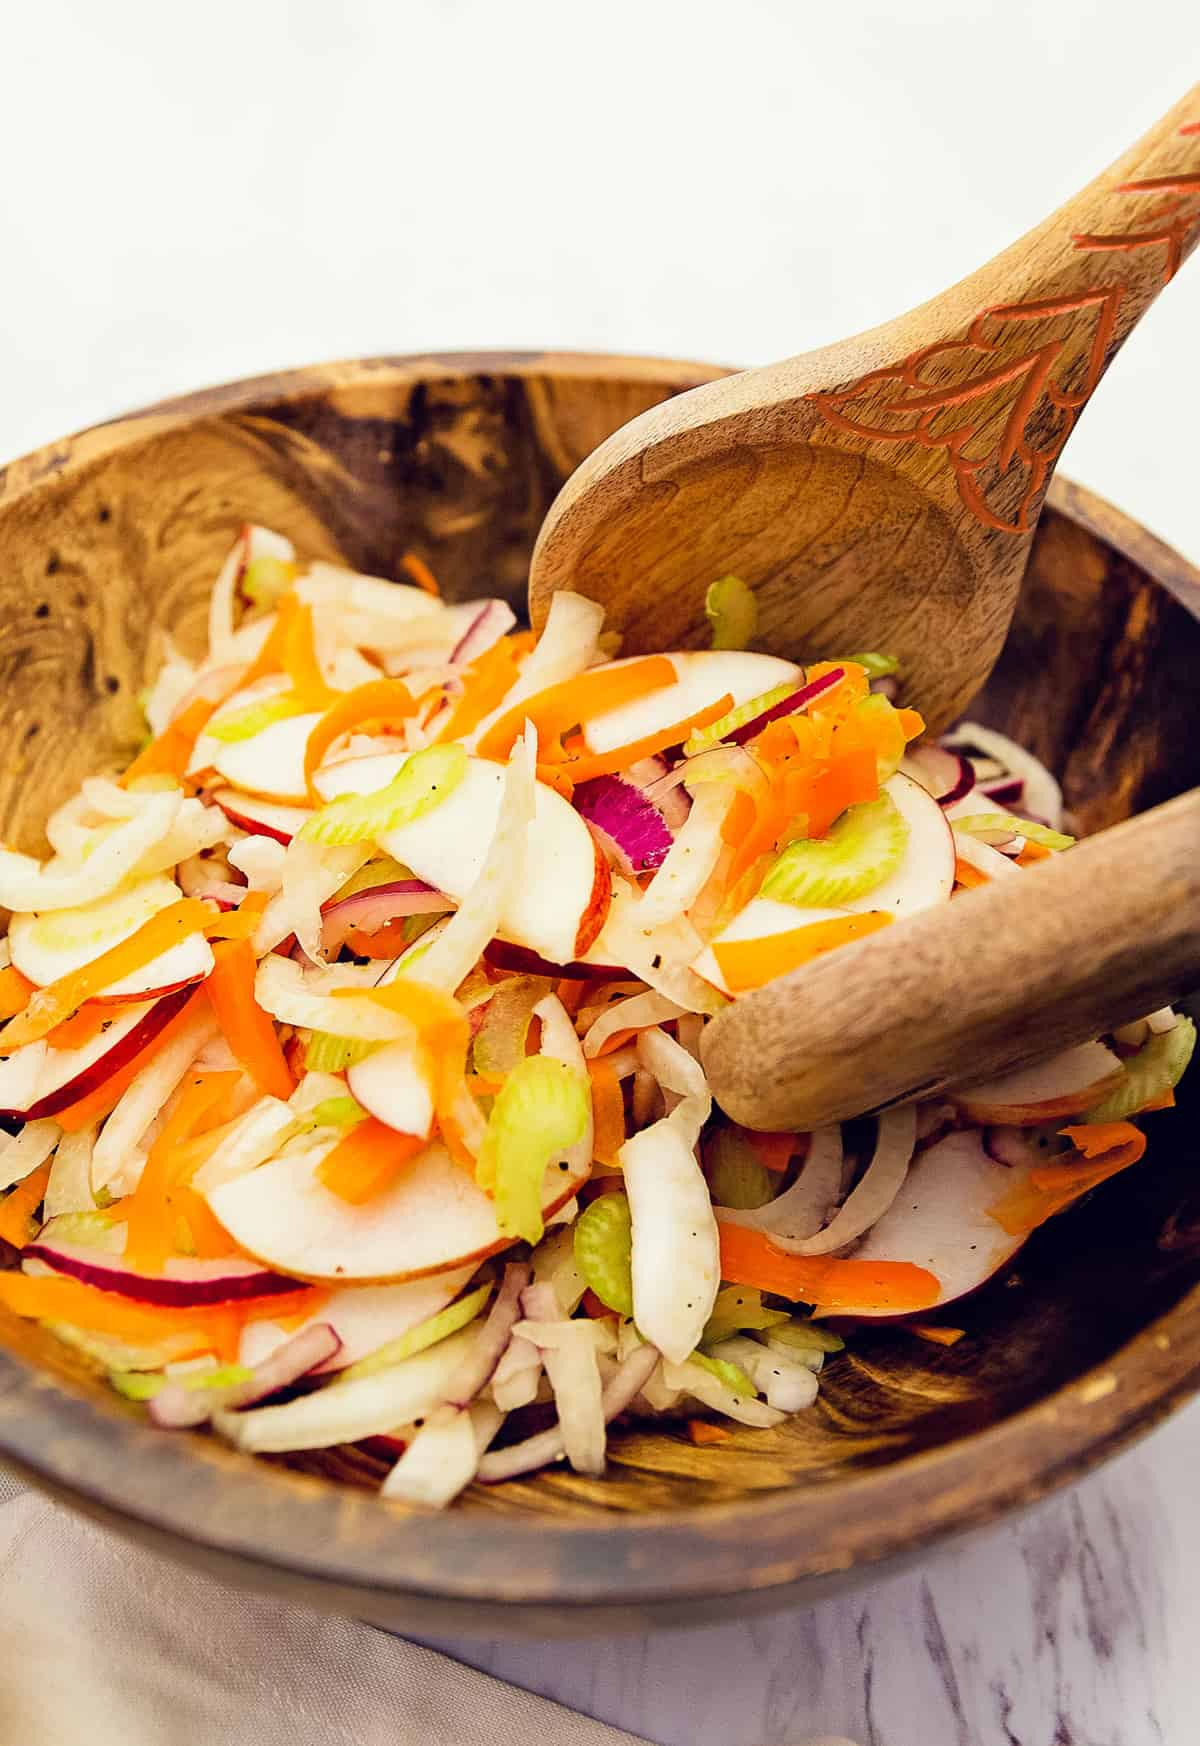 refreshing fennel salad, fennel, apple, recipe, vegan, vegetarian, whole food plant based, wfpb, gluten free, oil free, refined sugar free, no oil, no refined sugar, dinner, lunch, side, salad, 30 minutes, fast, quick, simple, healthy